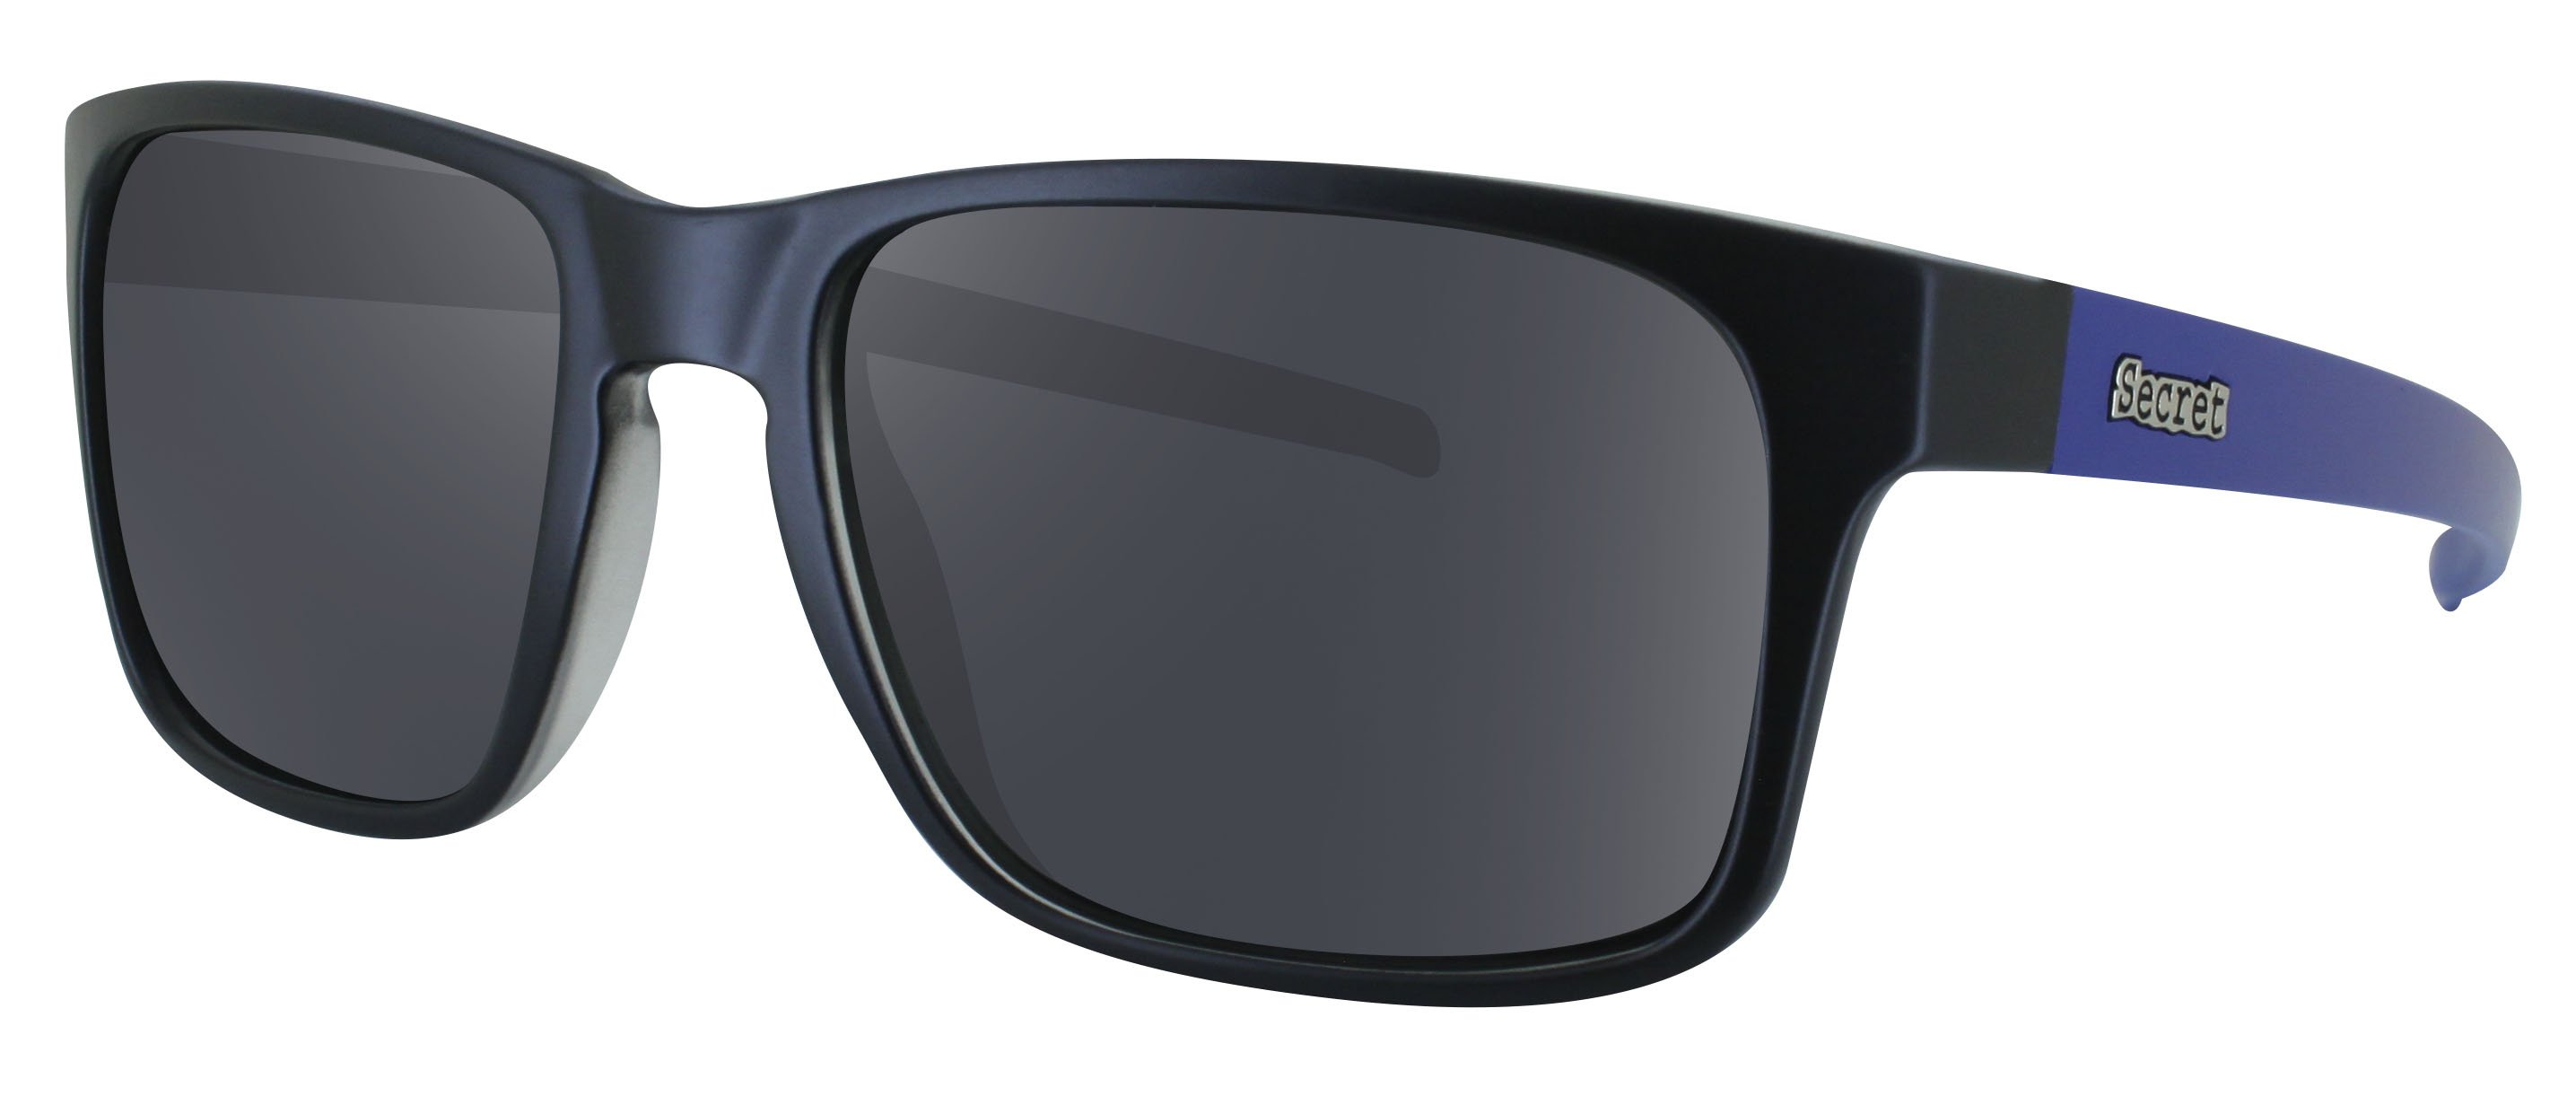 ÓC SECRET MOTLEY BLACK/MATTE BLUE / POLARIZED GRAY